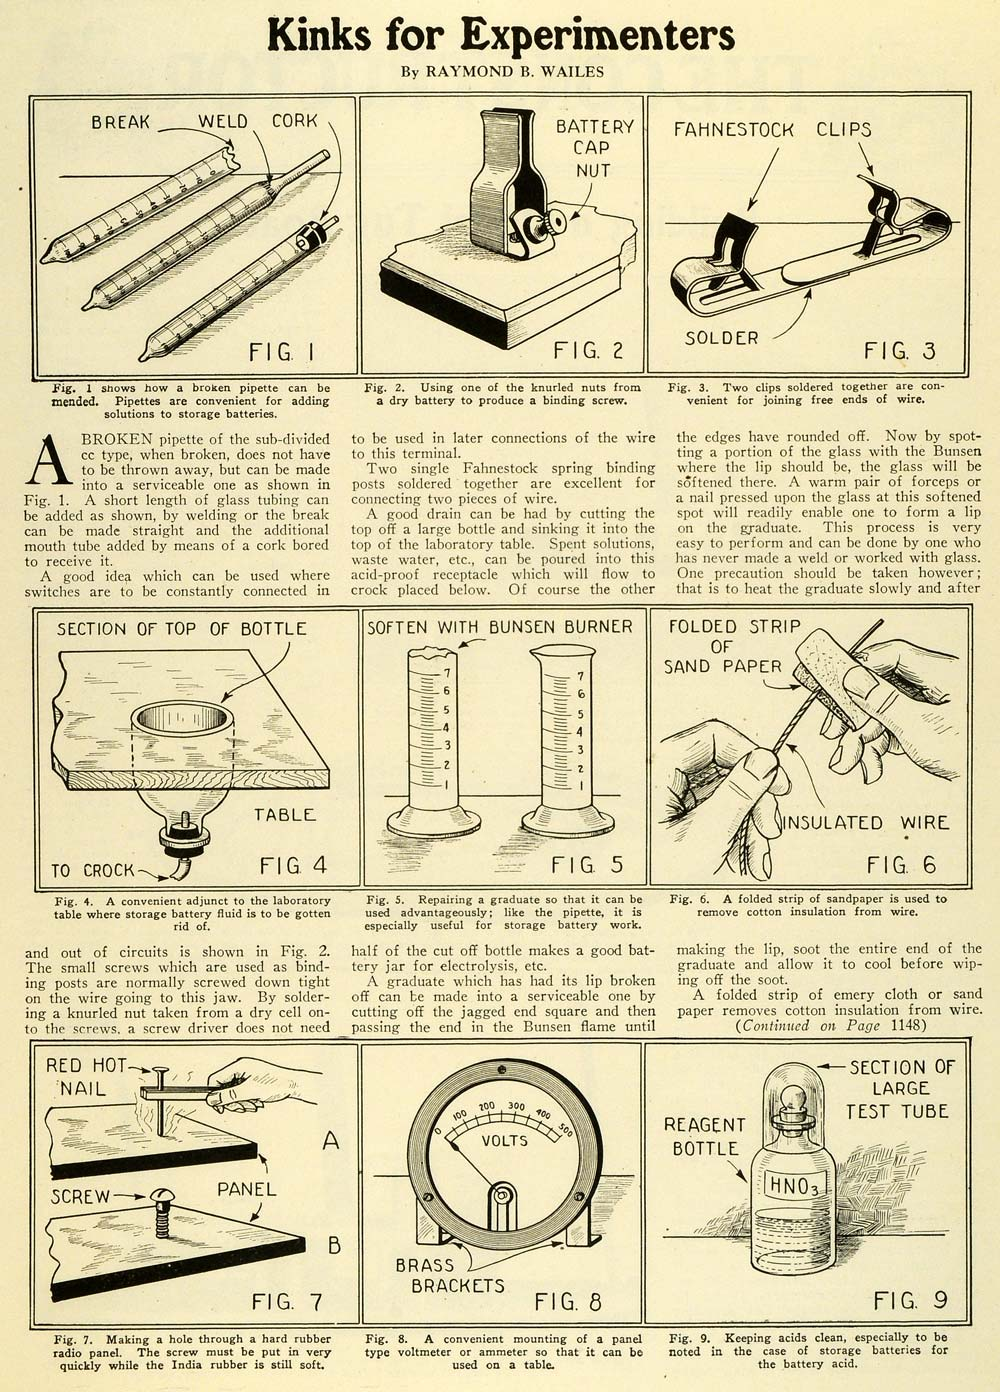 1927 article broken pipe repair diy diagrams bunsen burner tools 1927 article broken pipe repair diy diagrams bunsen burner tools circuits si1 pooptronica Choice Image